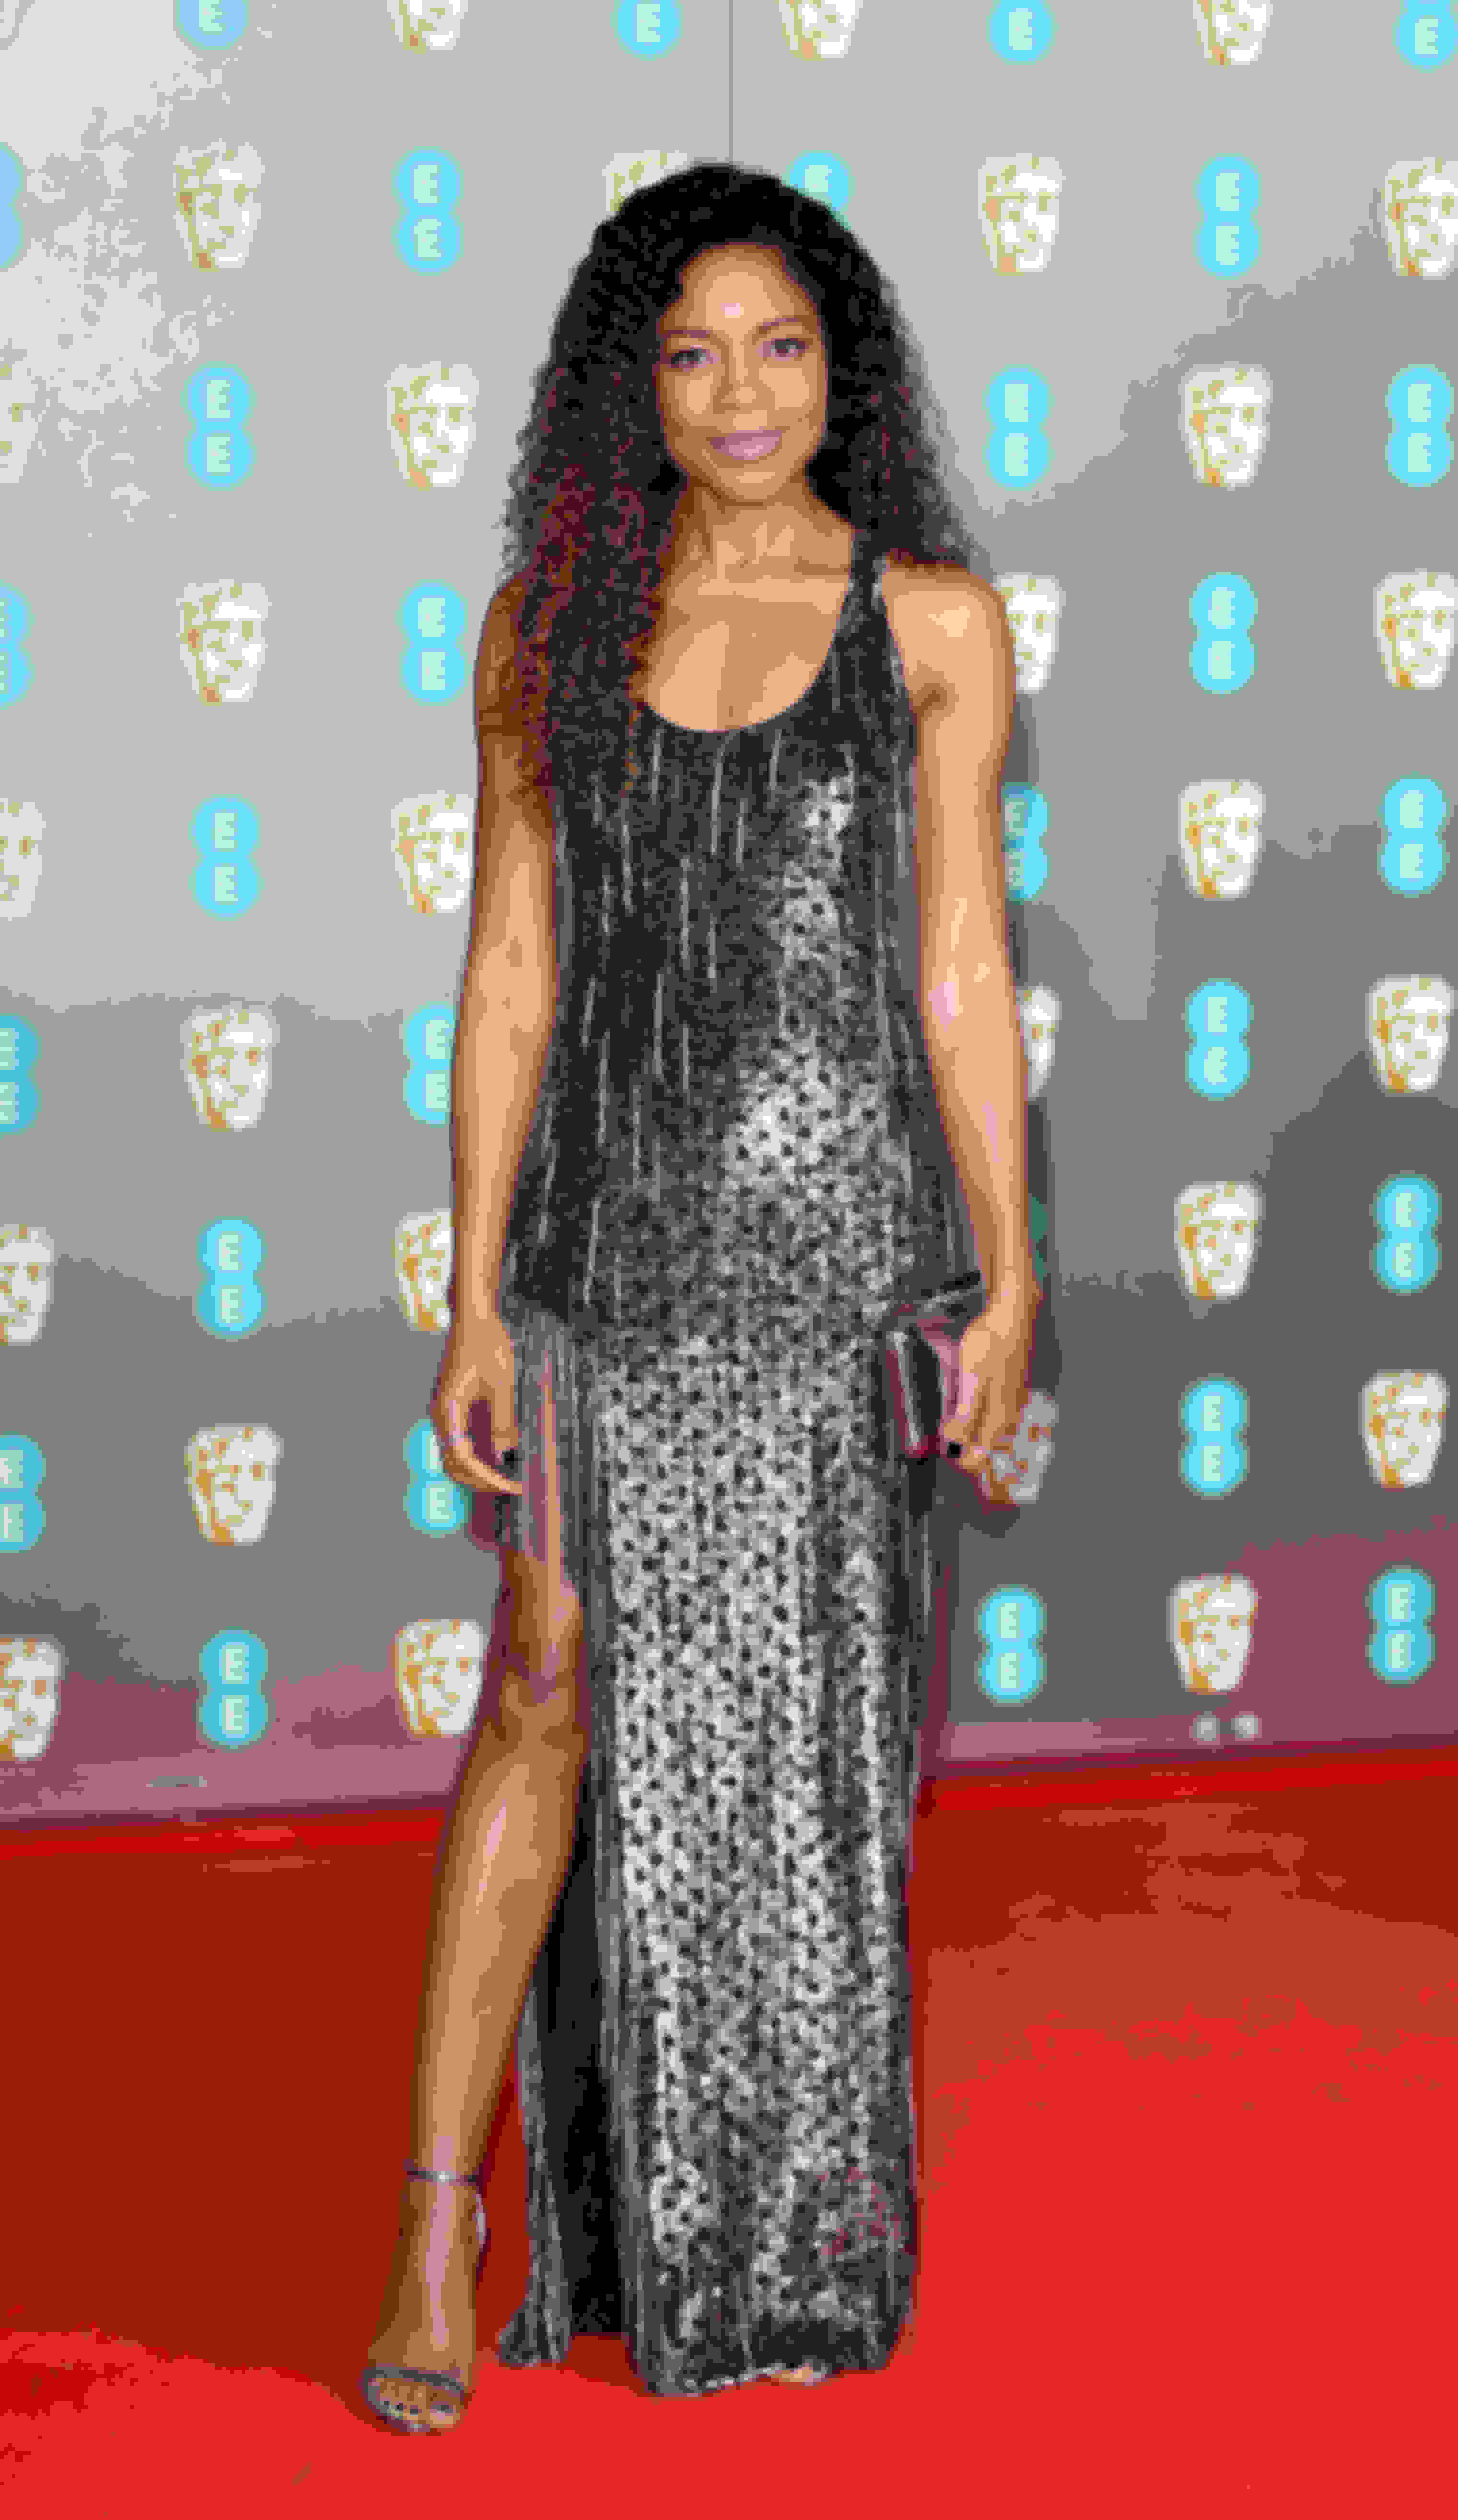 Naomie Harris wearing MINNY and carrying ELLIPSE